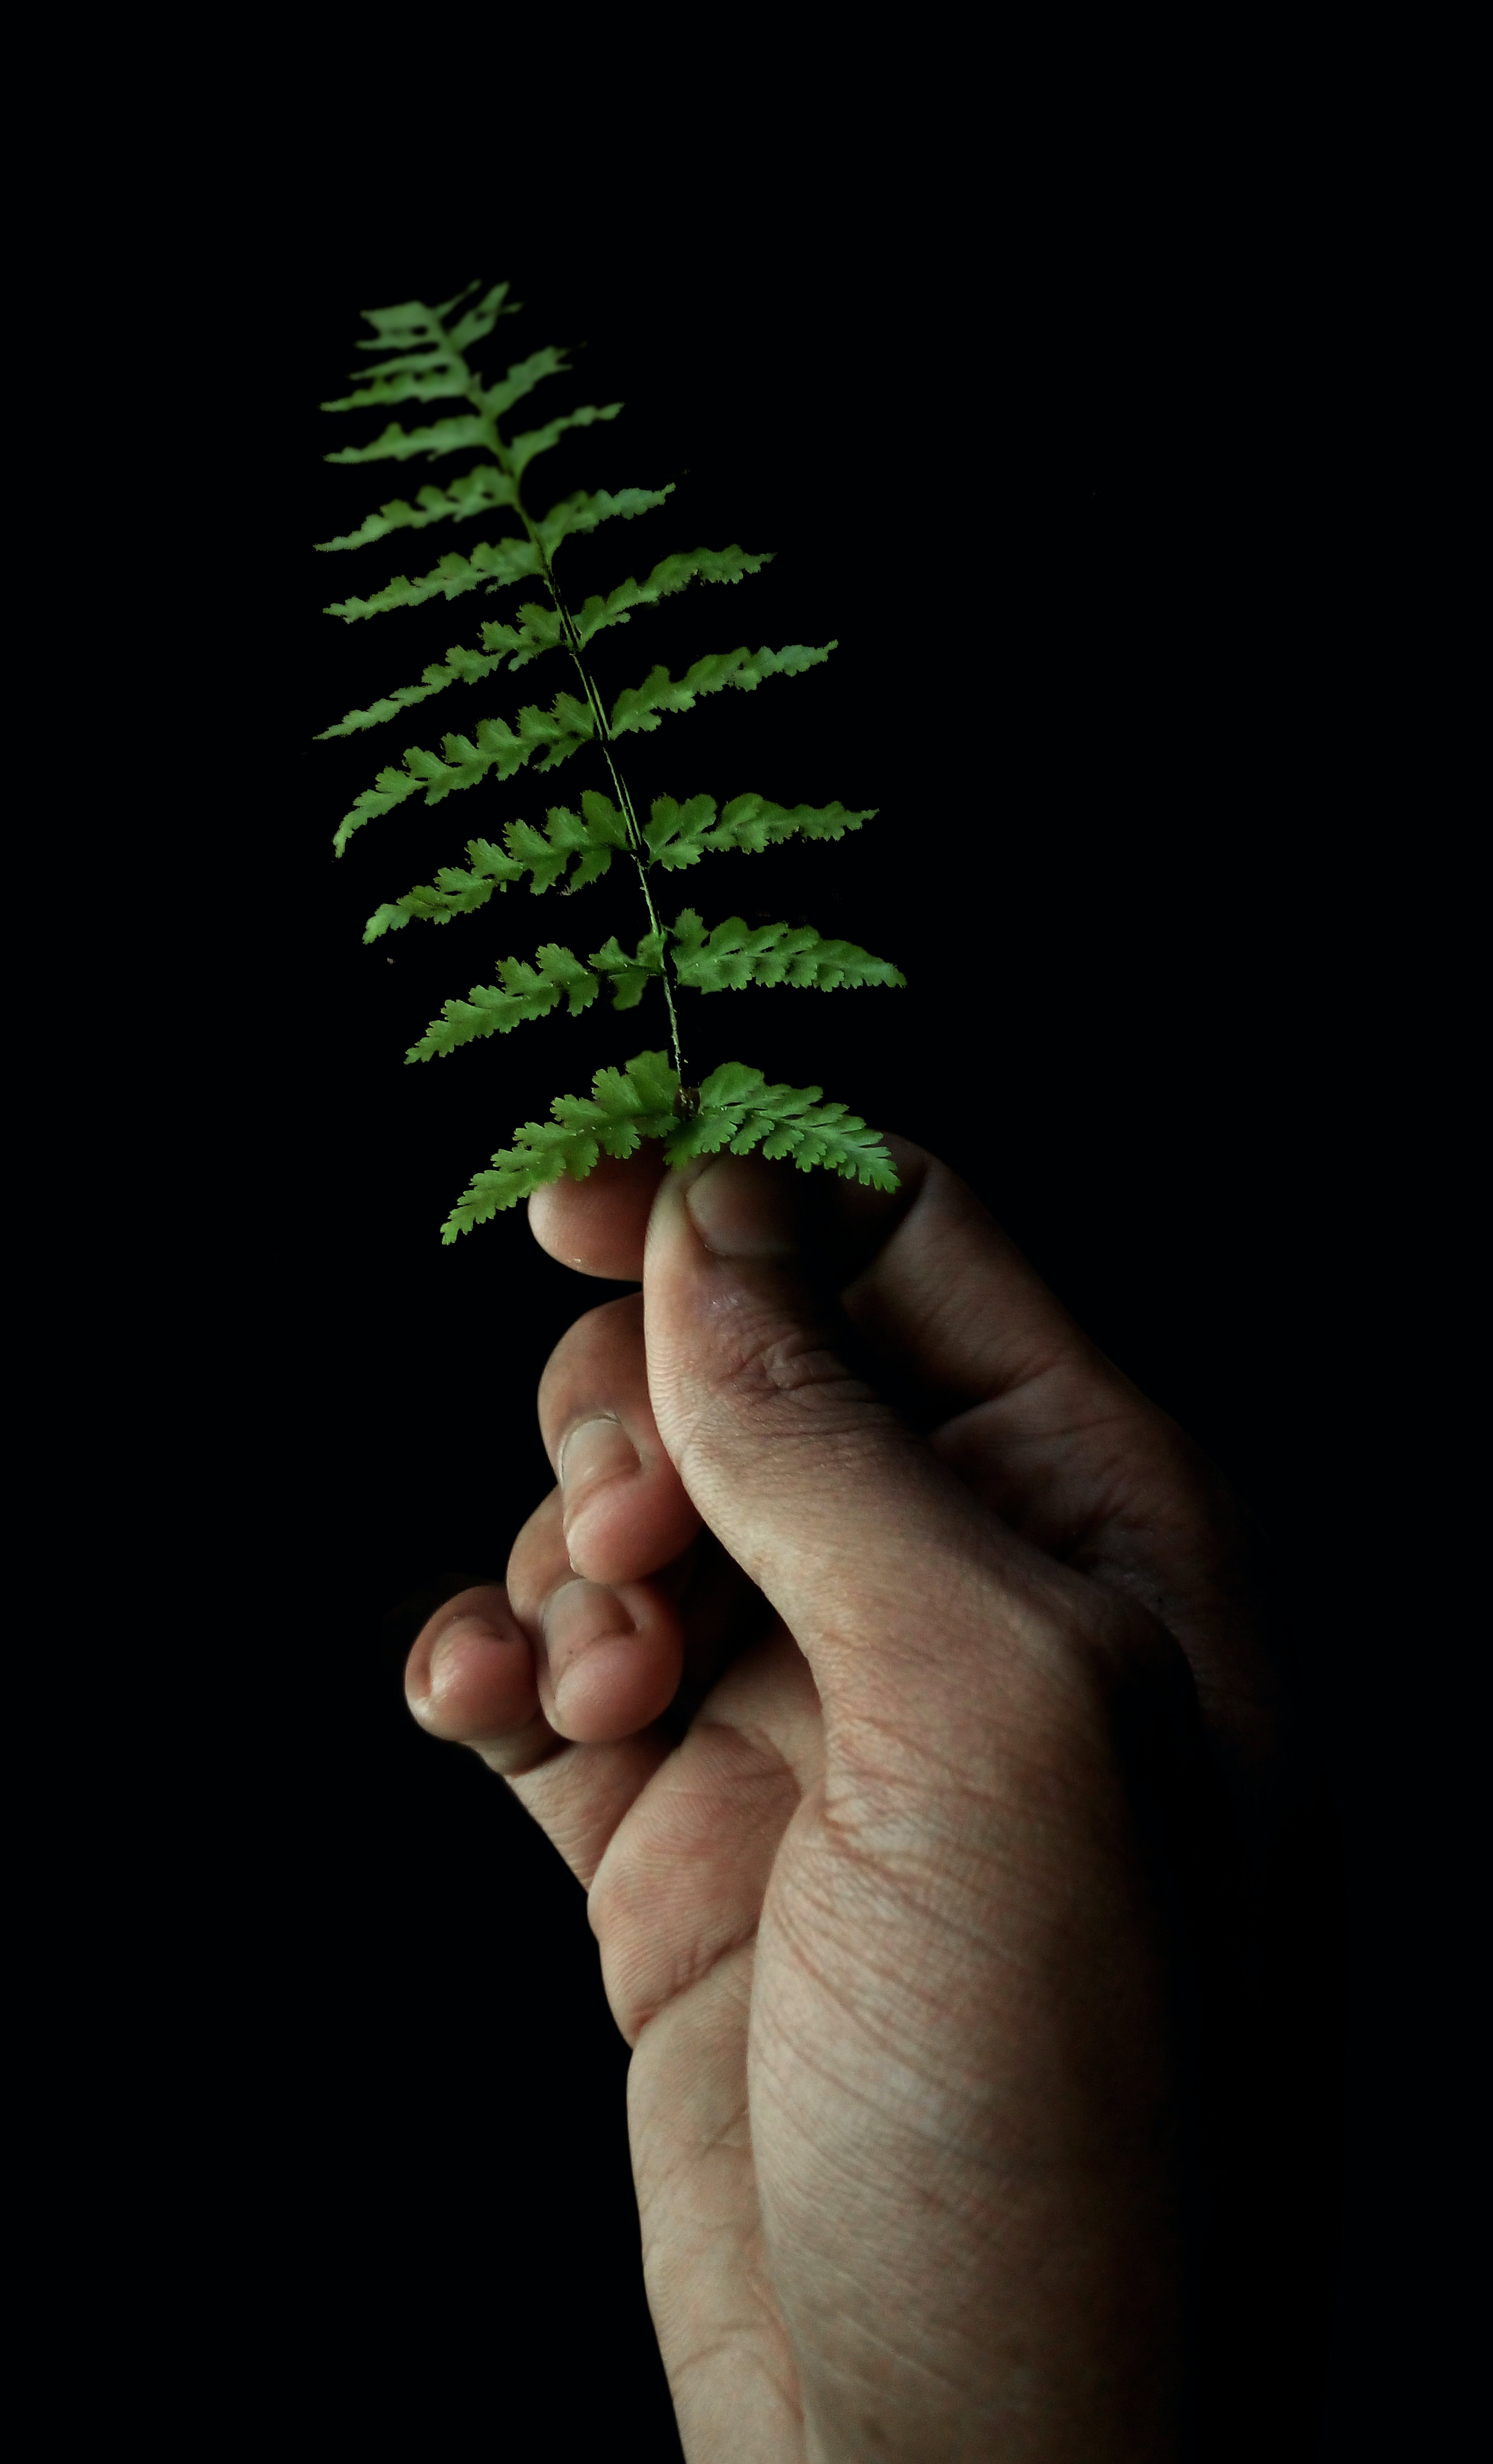 Free stock photo of by hand, darkness, green leaf, night photography